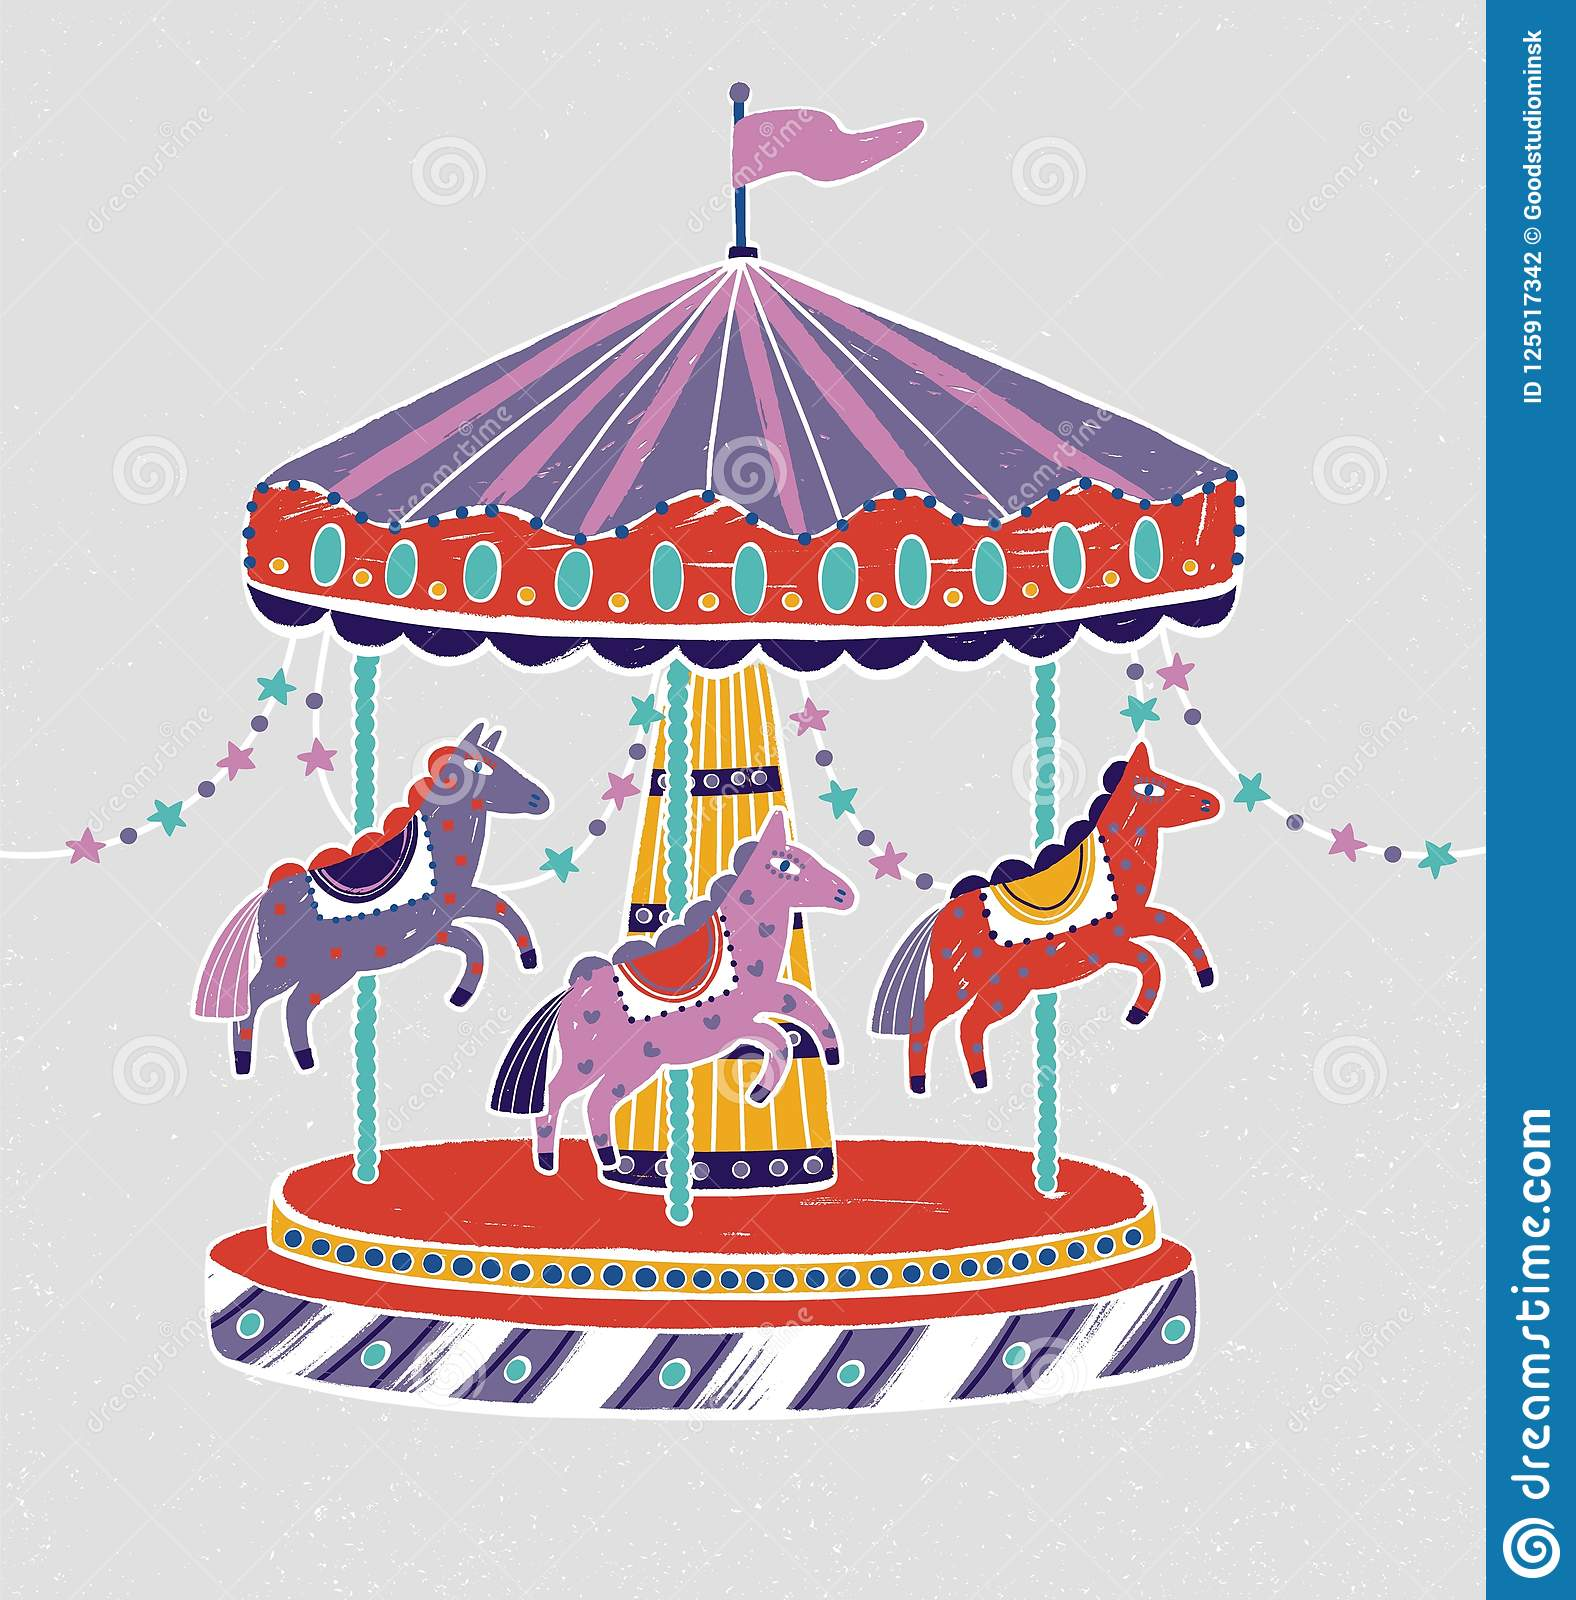 Carousel, Roundabout Or Merry-go-round With Adorable